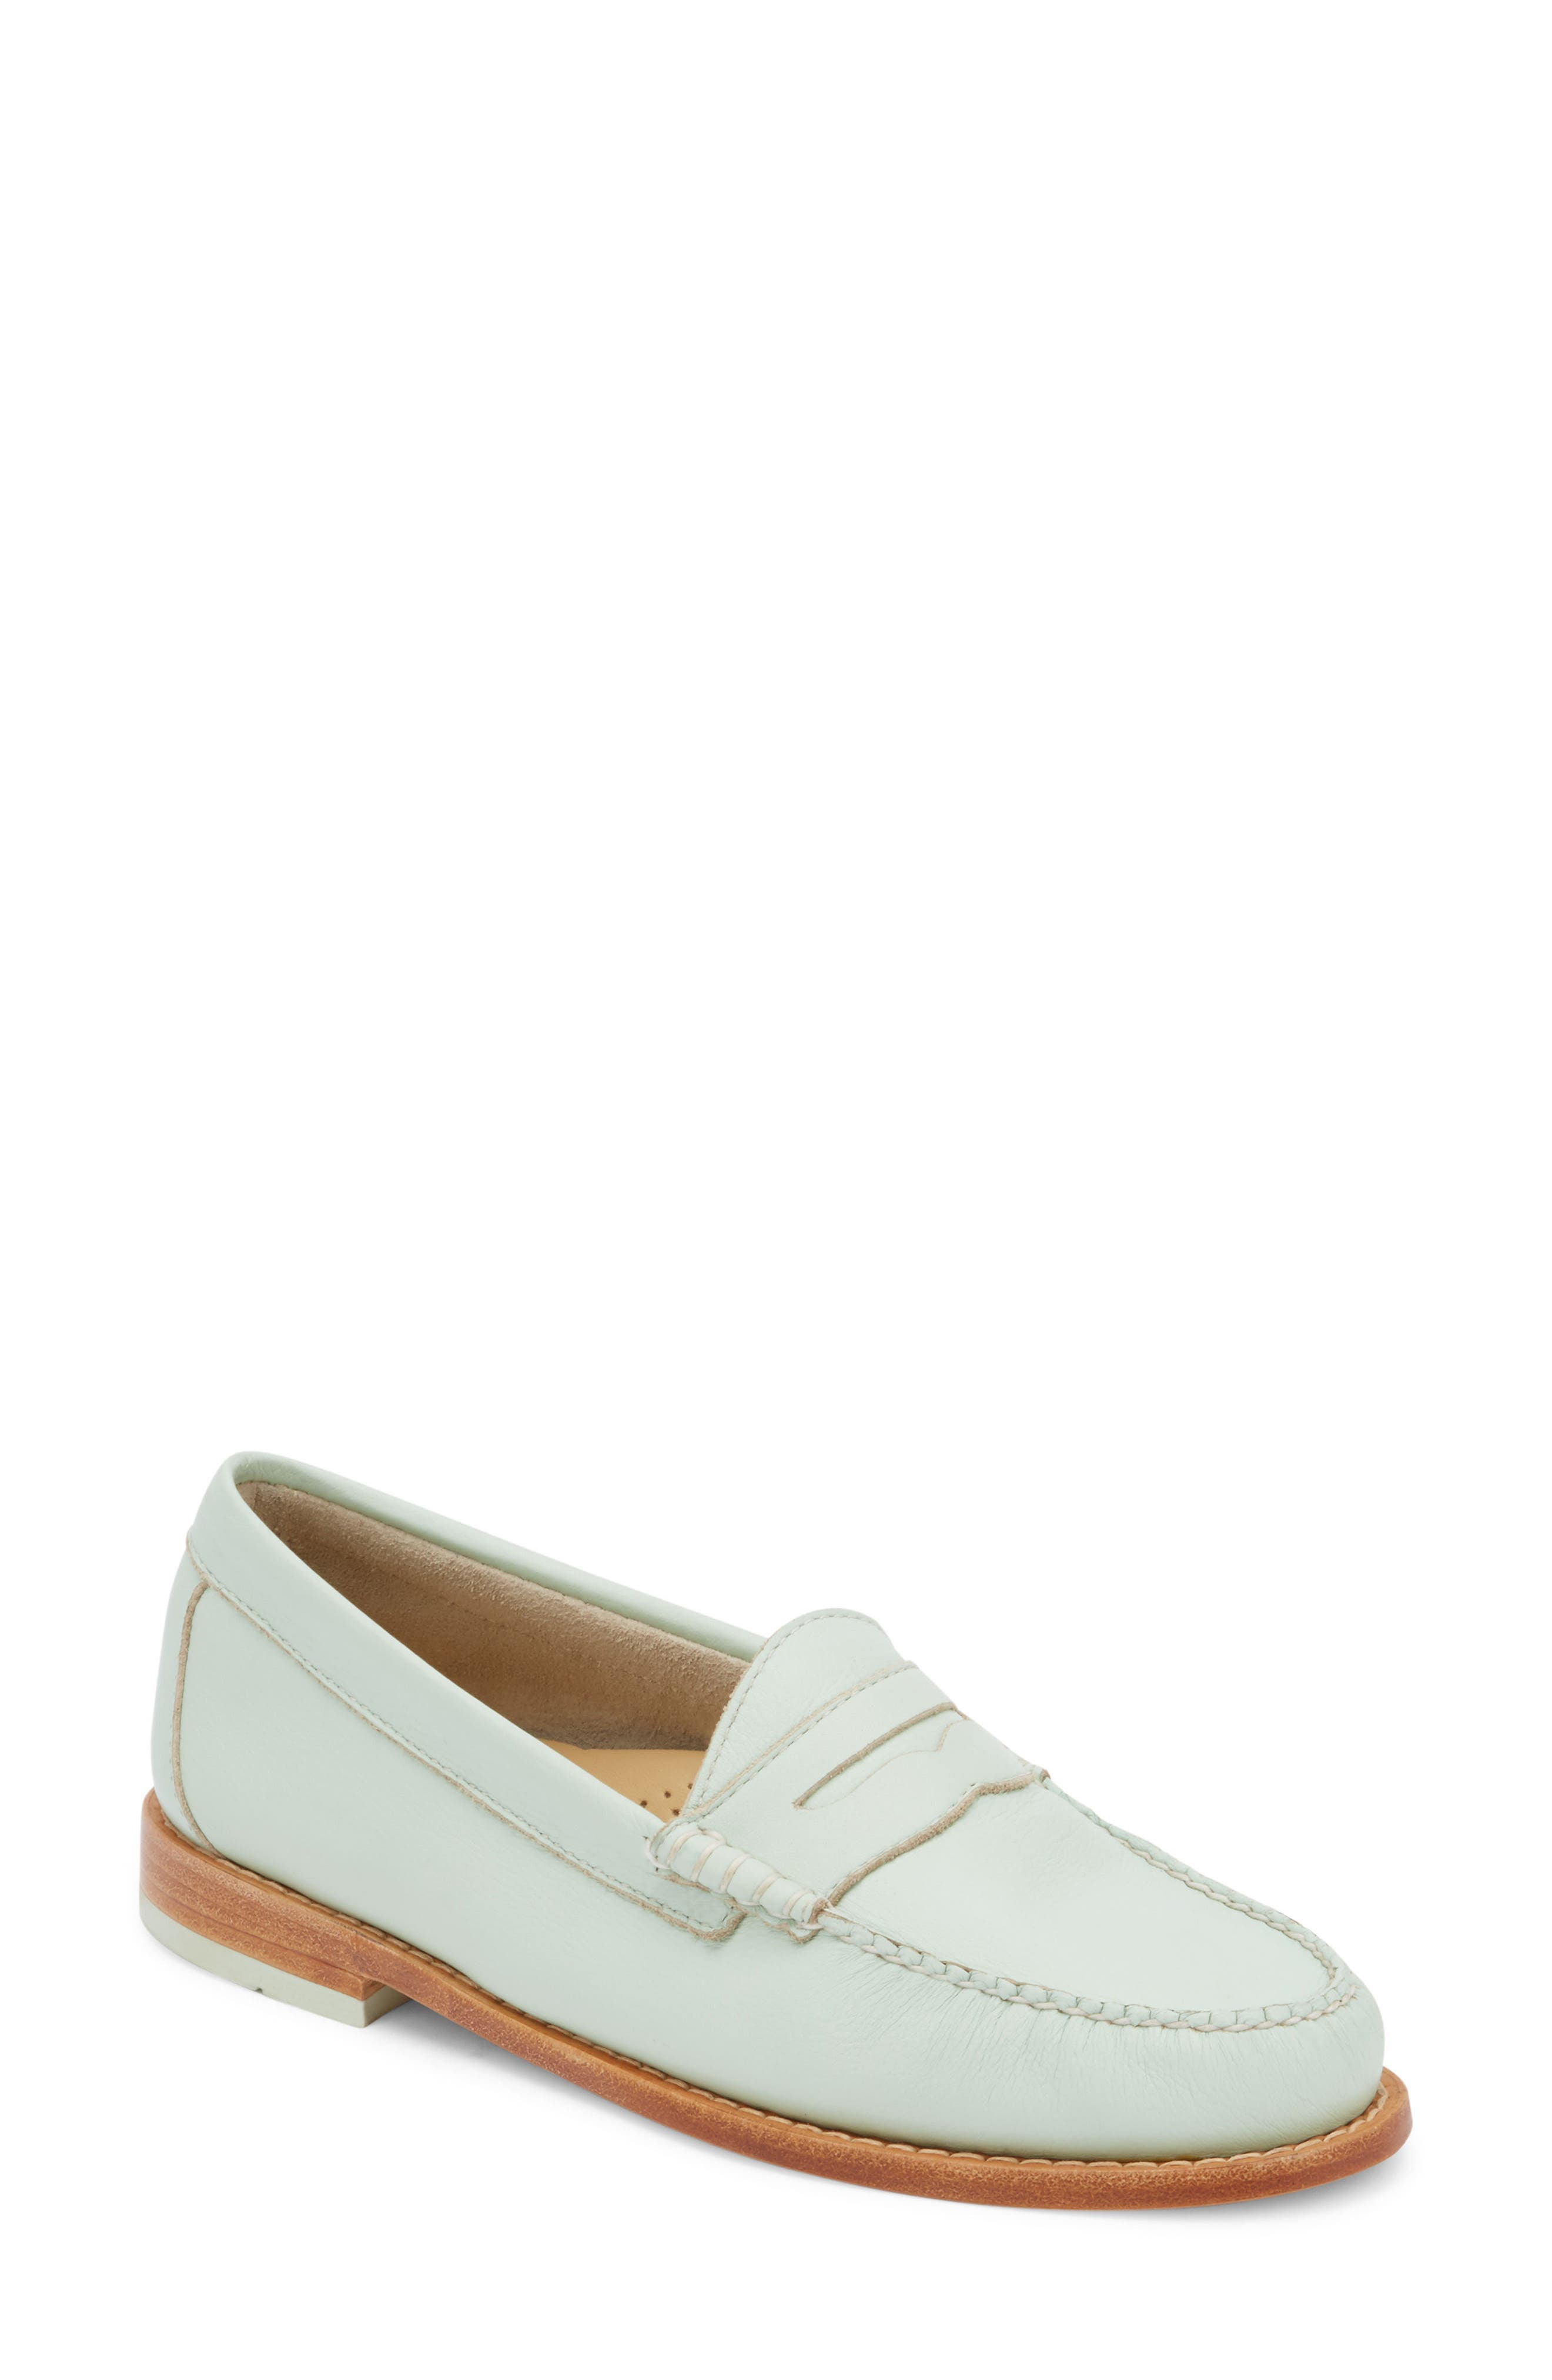 'Whitney' Loafer,                         Main,                         color, MINT GREEN LEATHER